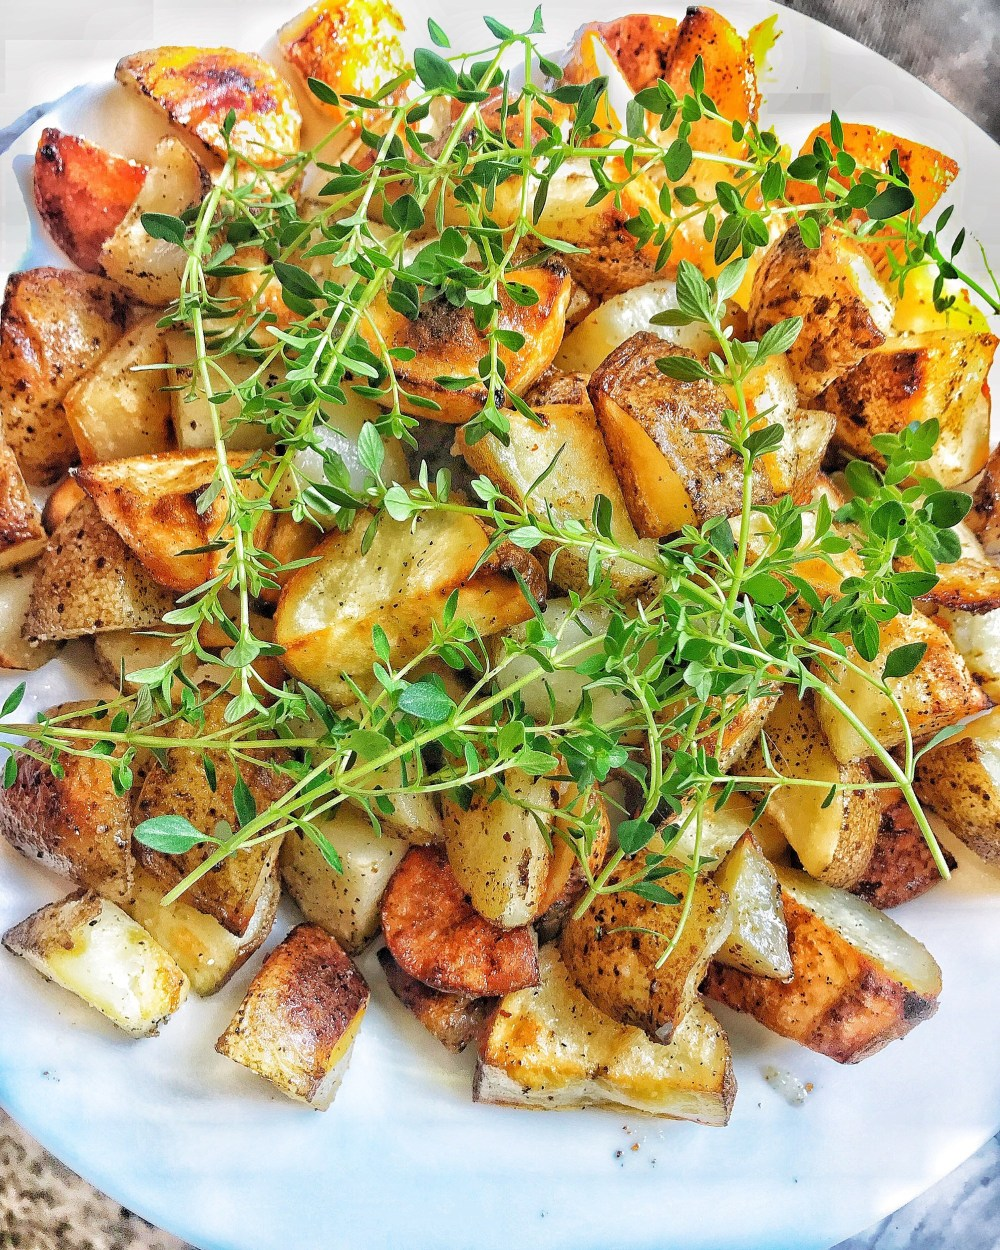 a picture of crispy fried potatoes